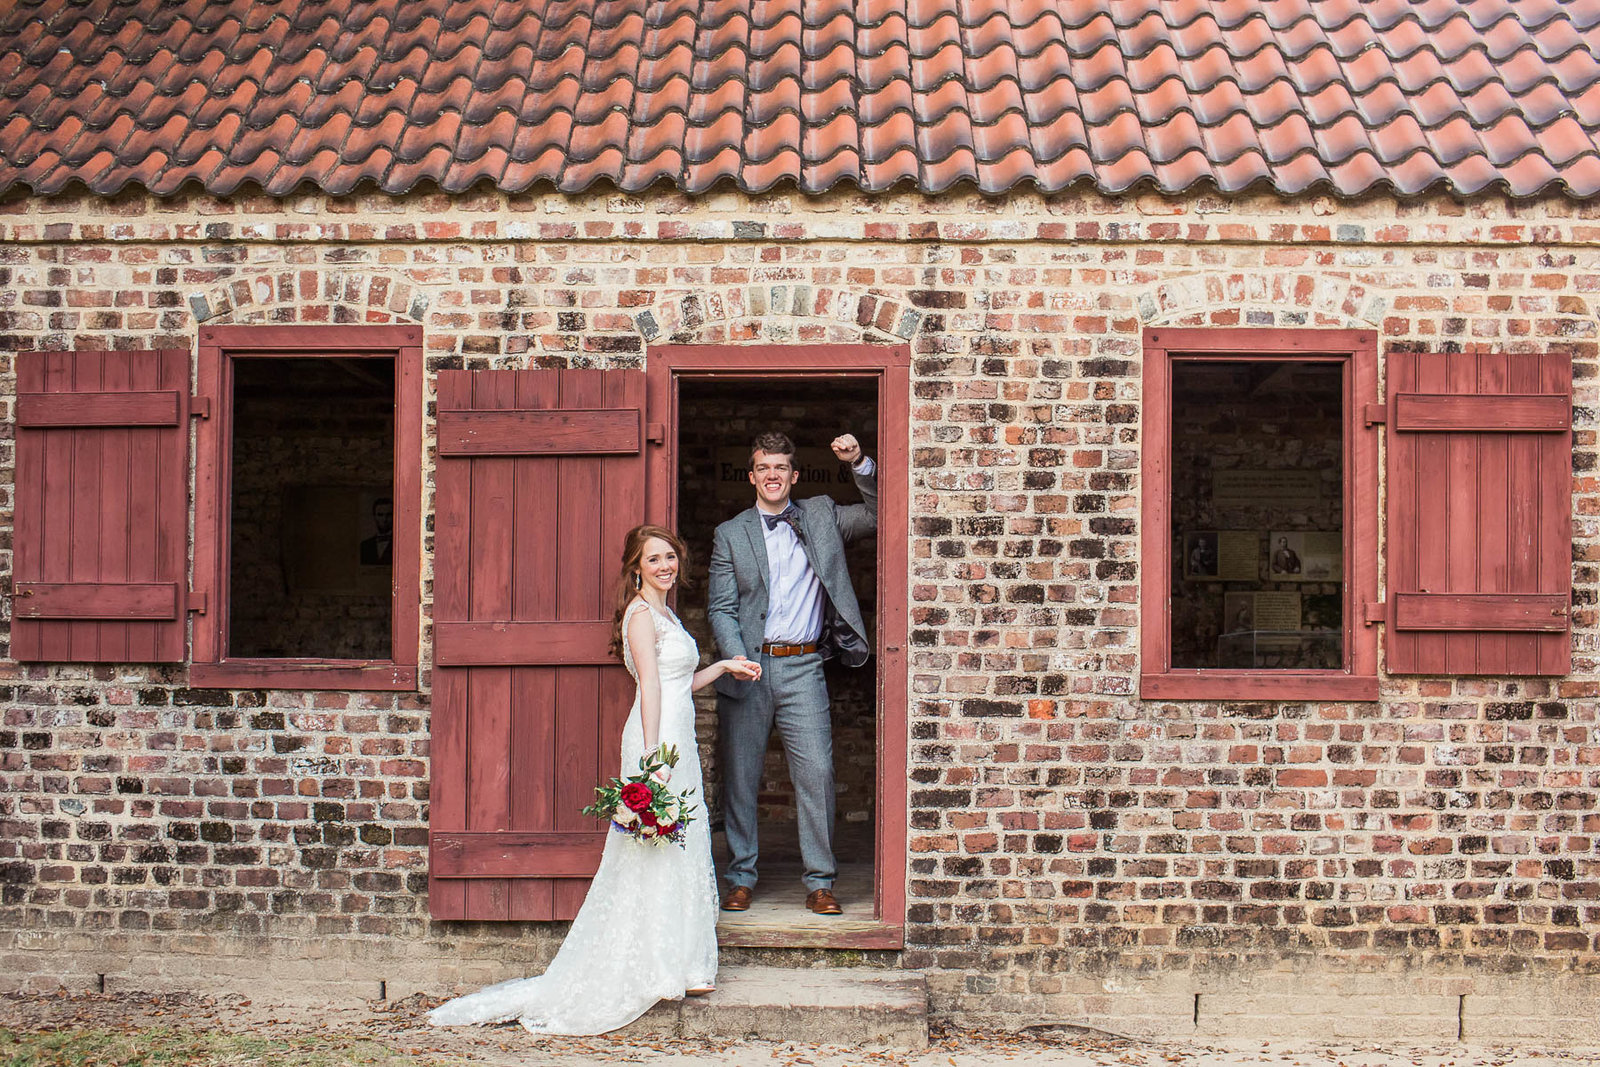 Bride and groom pose together in brick building, Boone Hall Plantation, Charleston, South Carolina